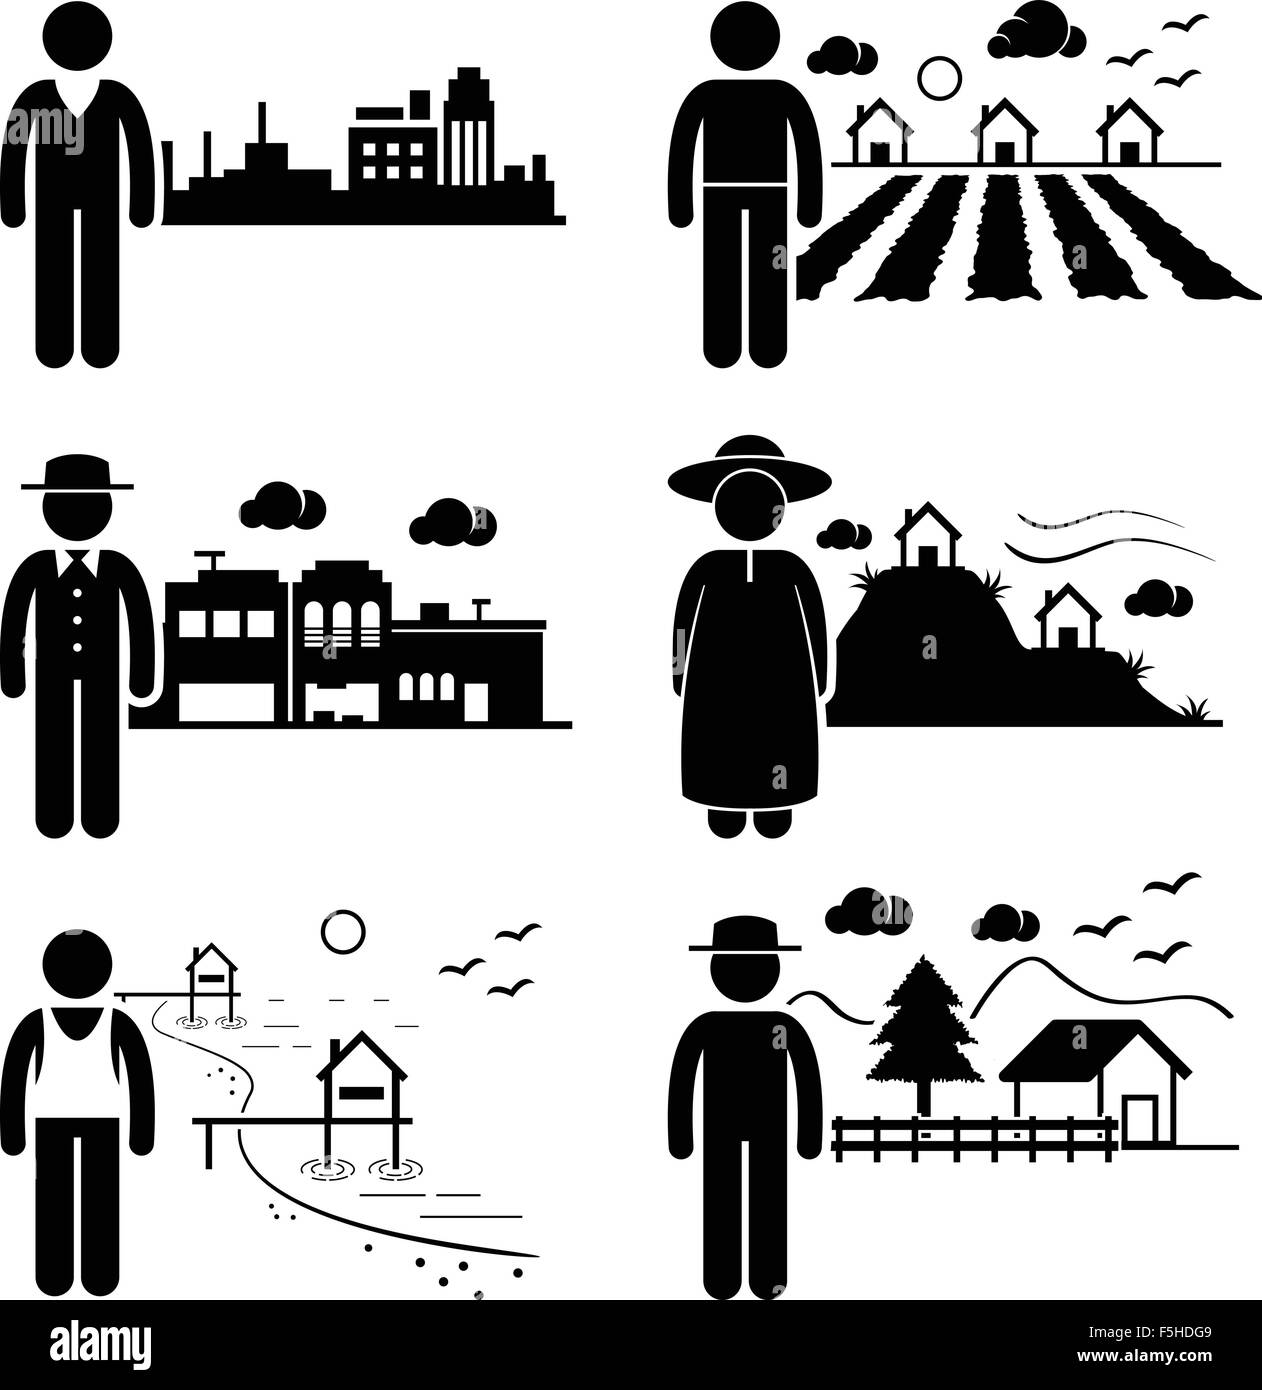 People in City Cottage House Small Town Highlands Seaside Village Home Stick Figure Pictogram Icon - Stock Vector